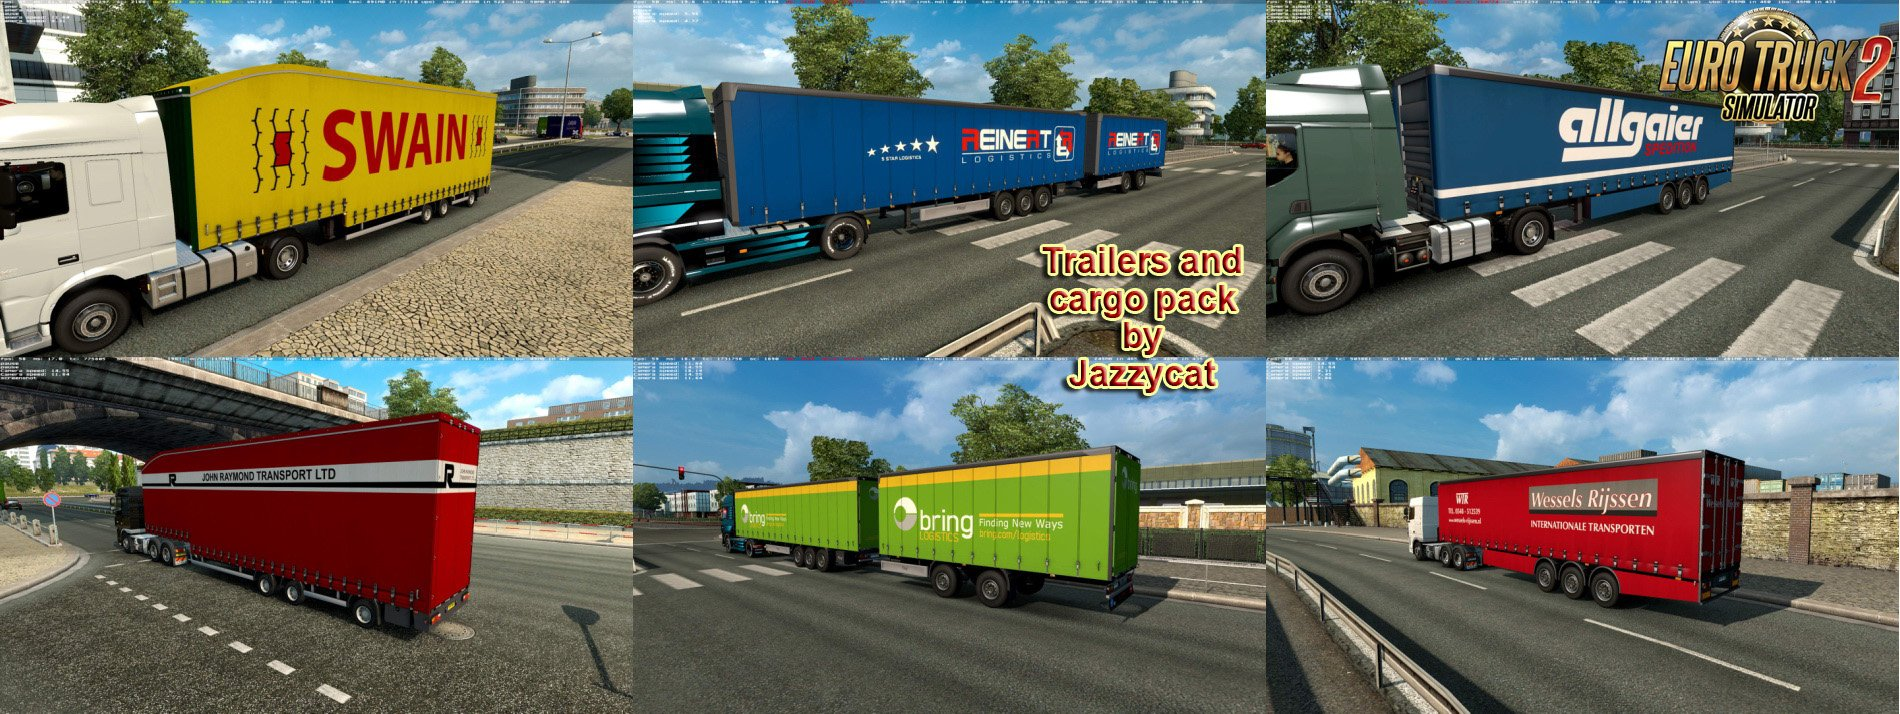 Trailers and Cargo Pack v5.7 by Jazzycat